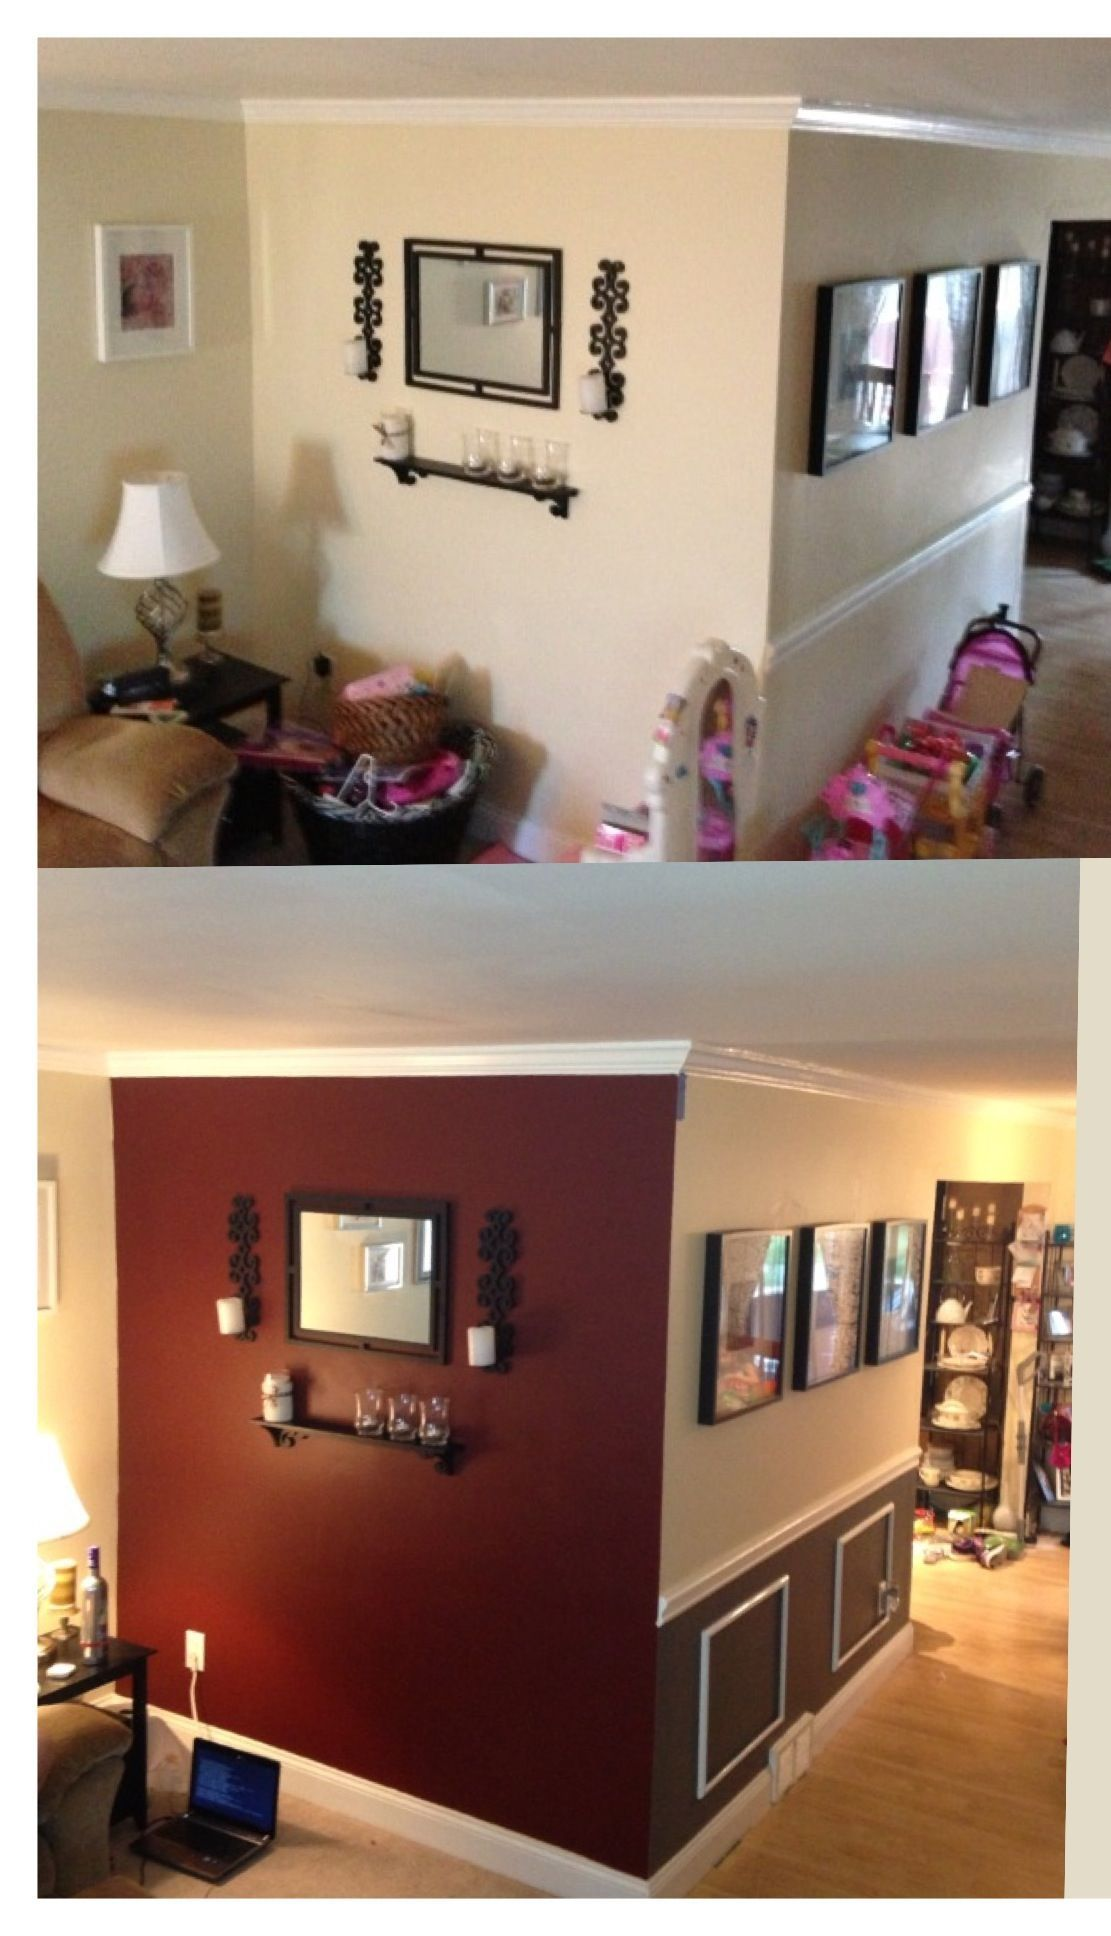 Before And After Accent Wall And Diy Wainscoting With Dark Jdk Grey Red Dining Wall Wainscoting Diy Wainscoting Accent Walls In Living Room Grey Accent Wall #red #living #room #accent #wall